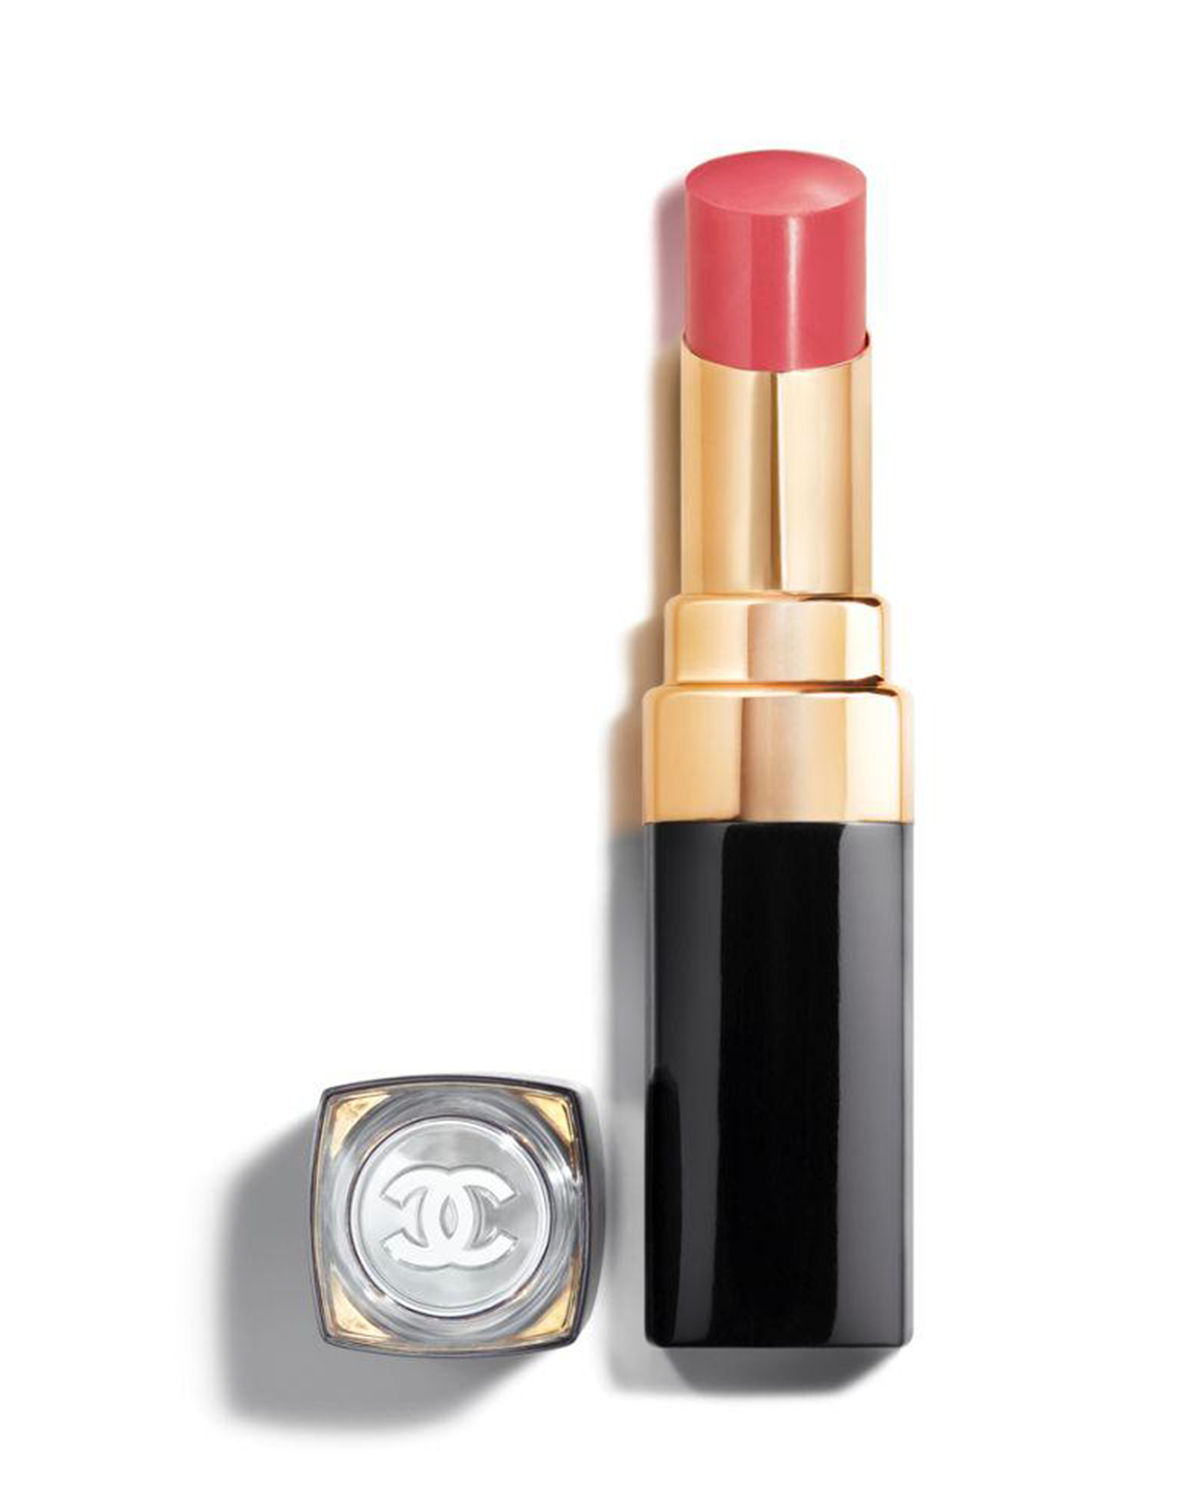 Reno Rouge Coco Flash Hydrating Lipstick by Neiman Marcus